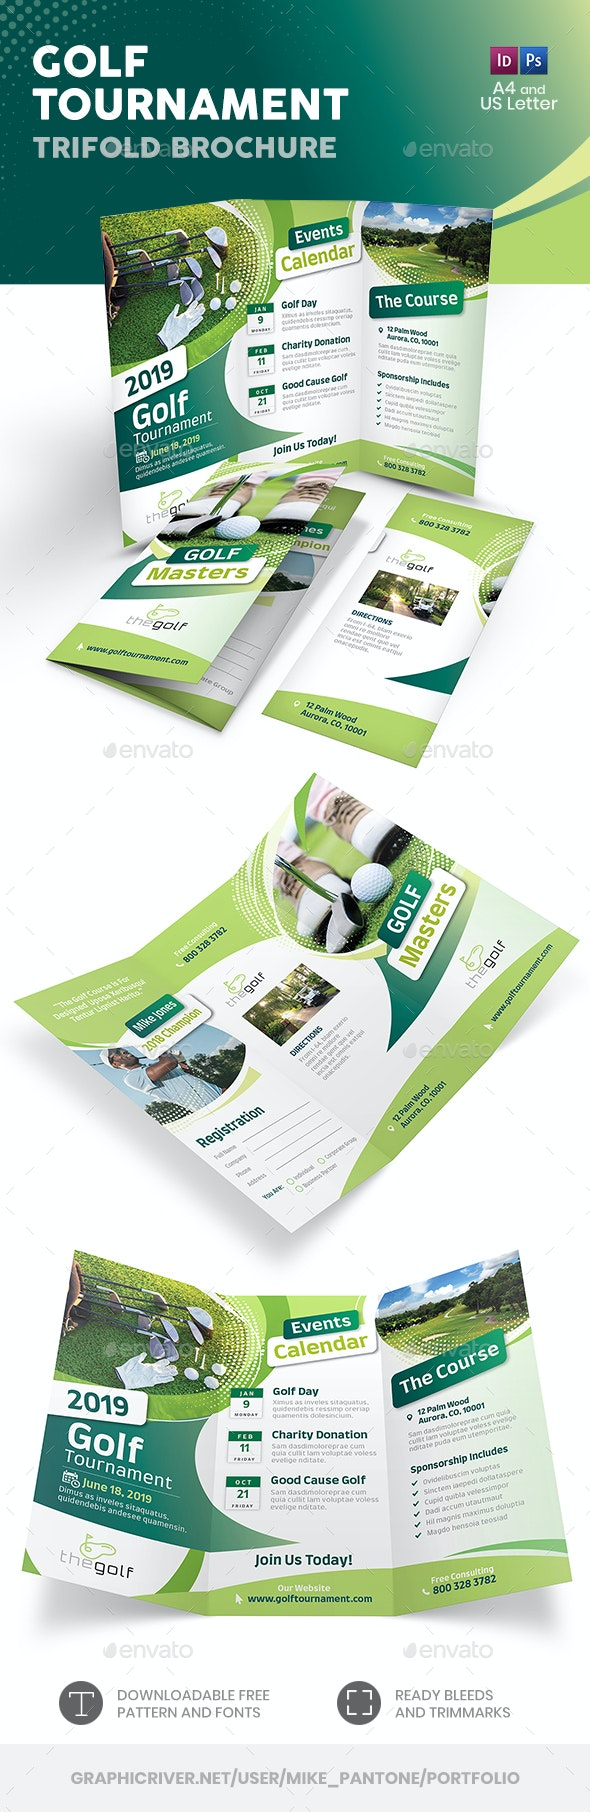 Golf Tournament 2019 Trifold Brochure - Informational Brochures